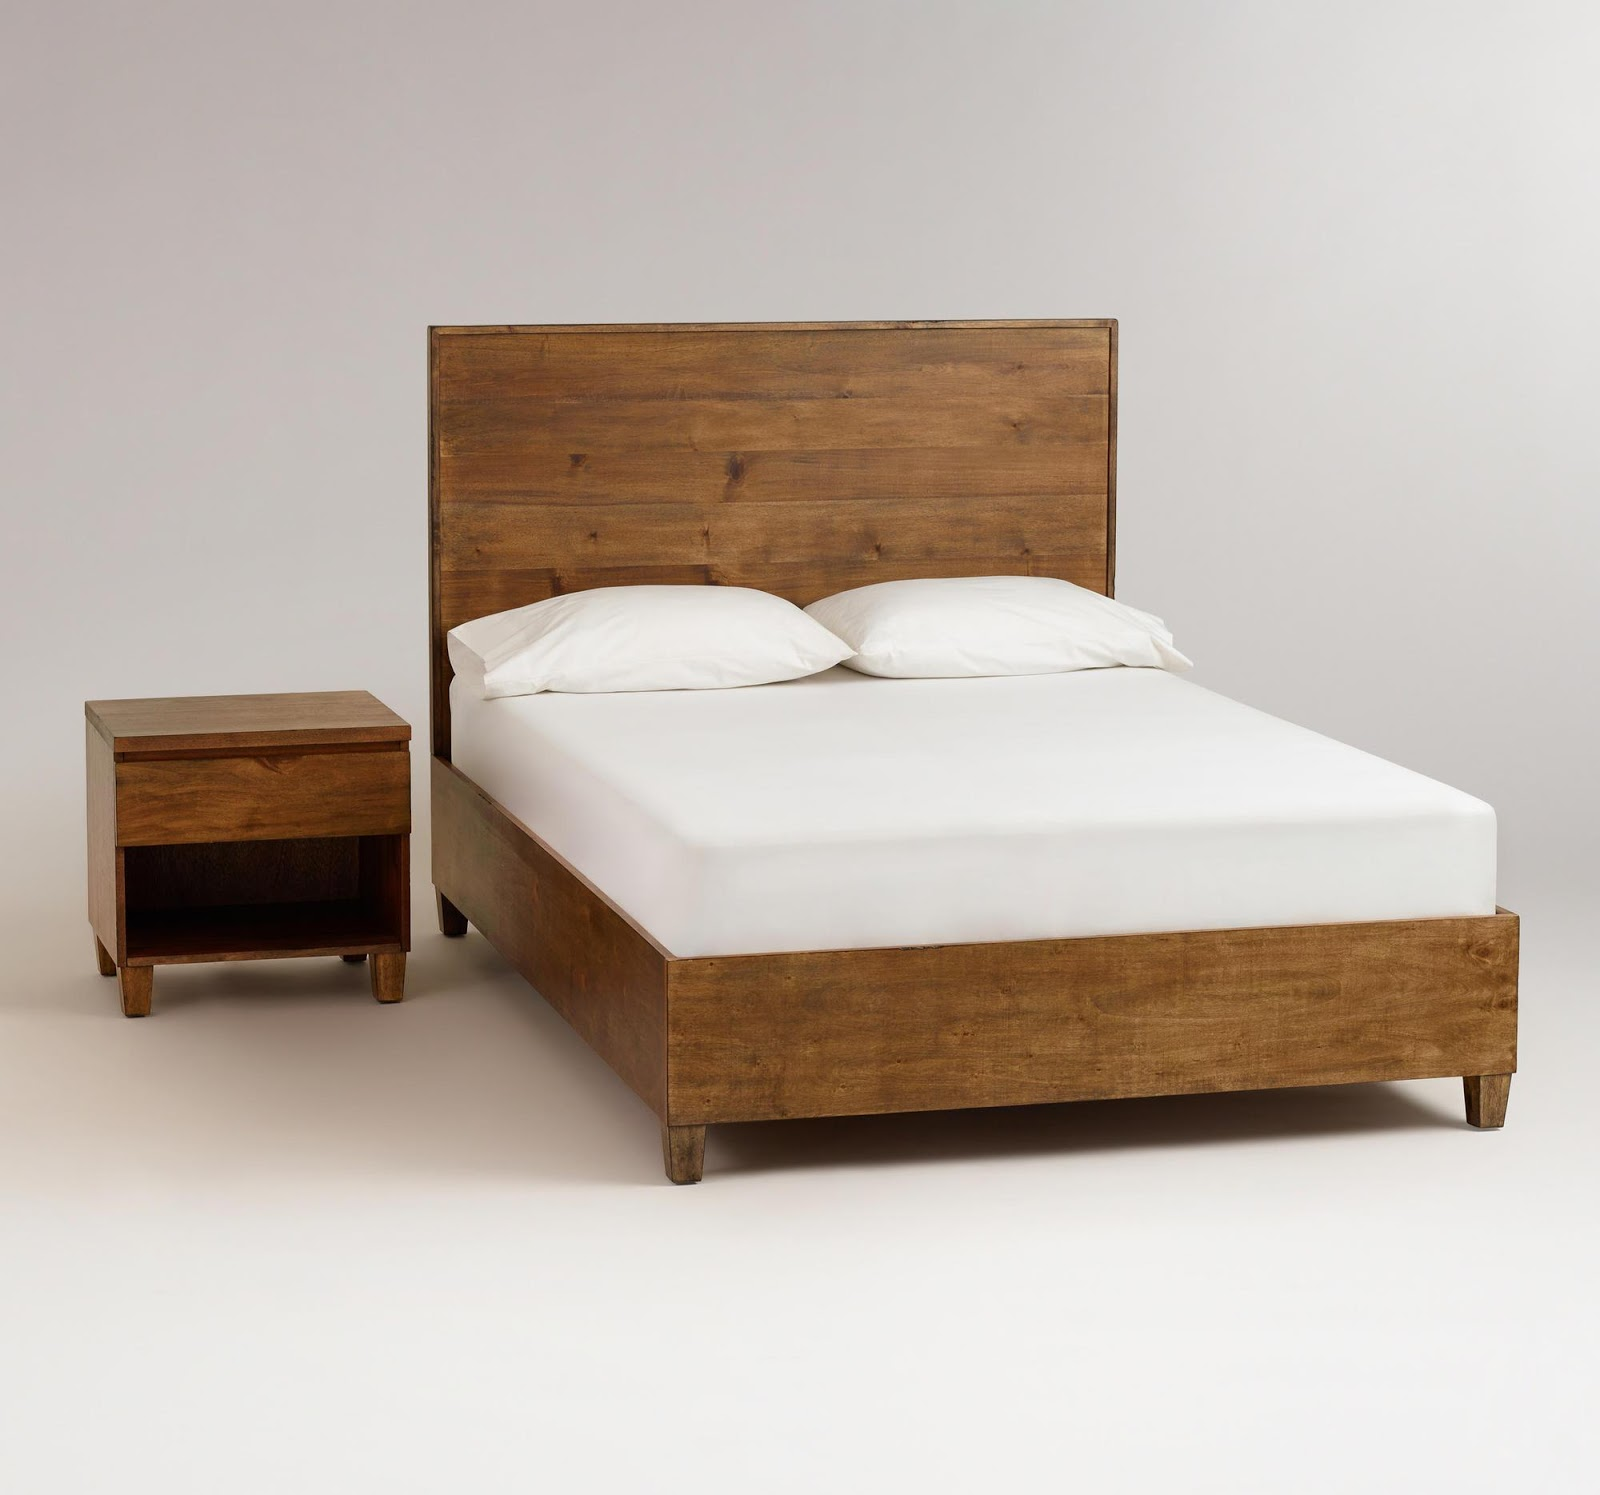 Home priority homey feeling of rustic bed frames ideas for Simple bed designs